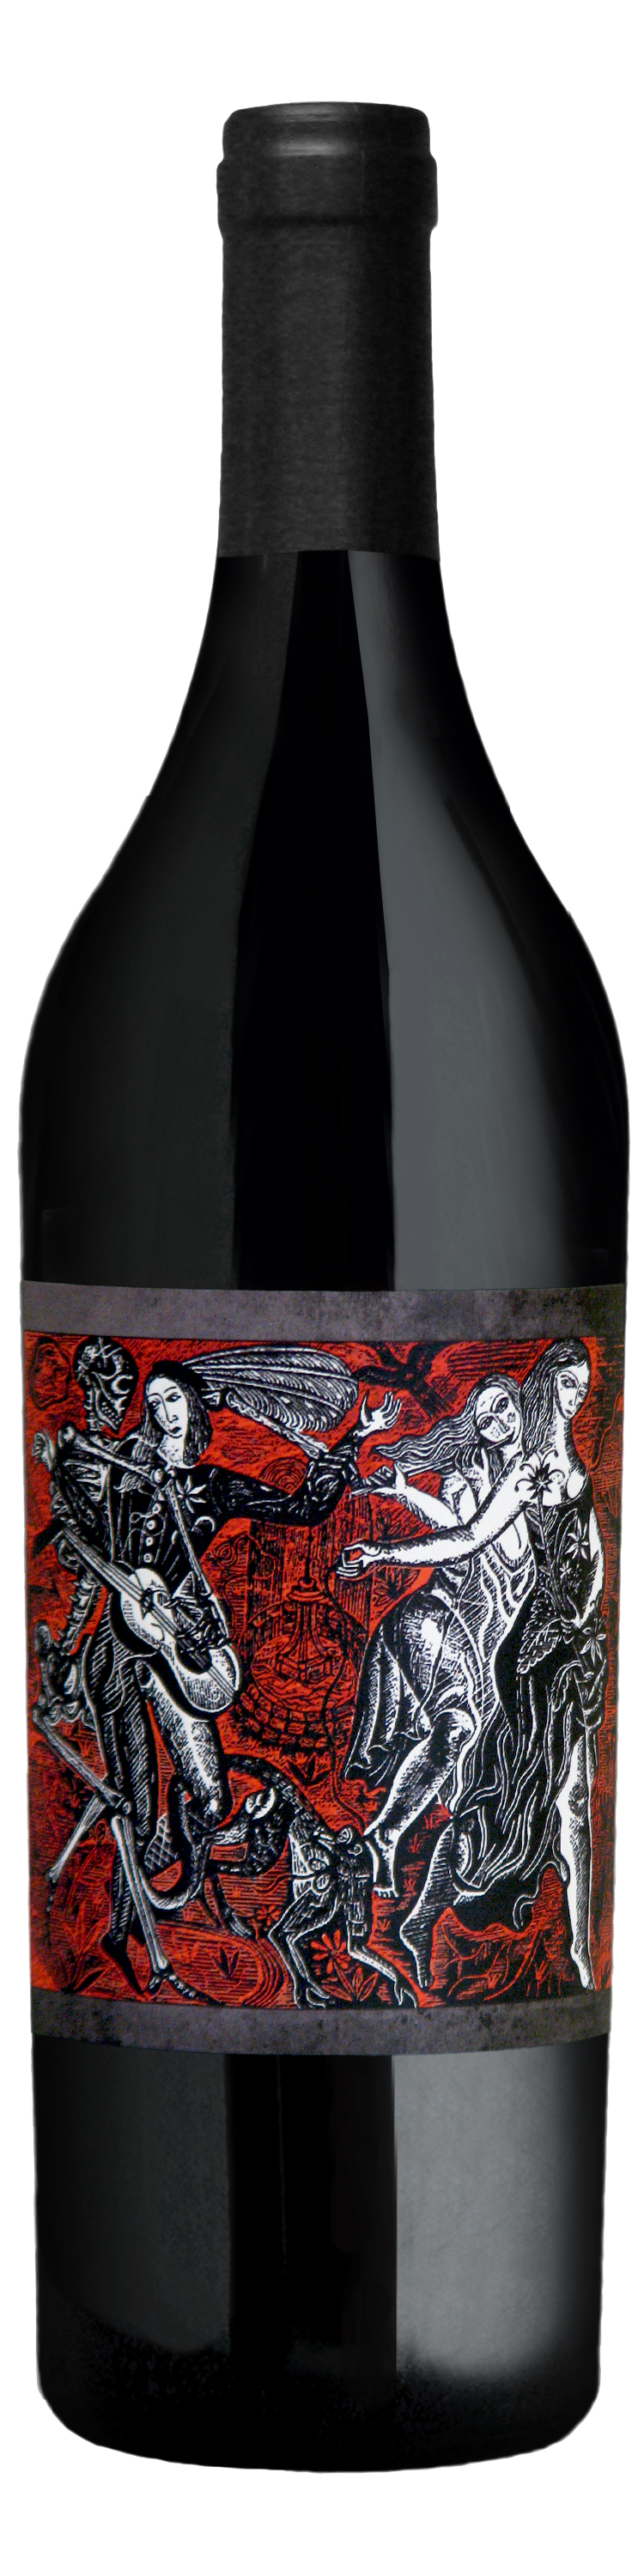 Reaper Wines - Red Blend